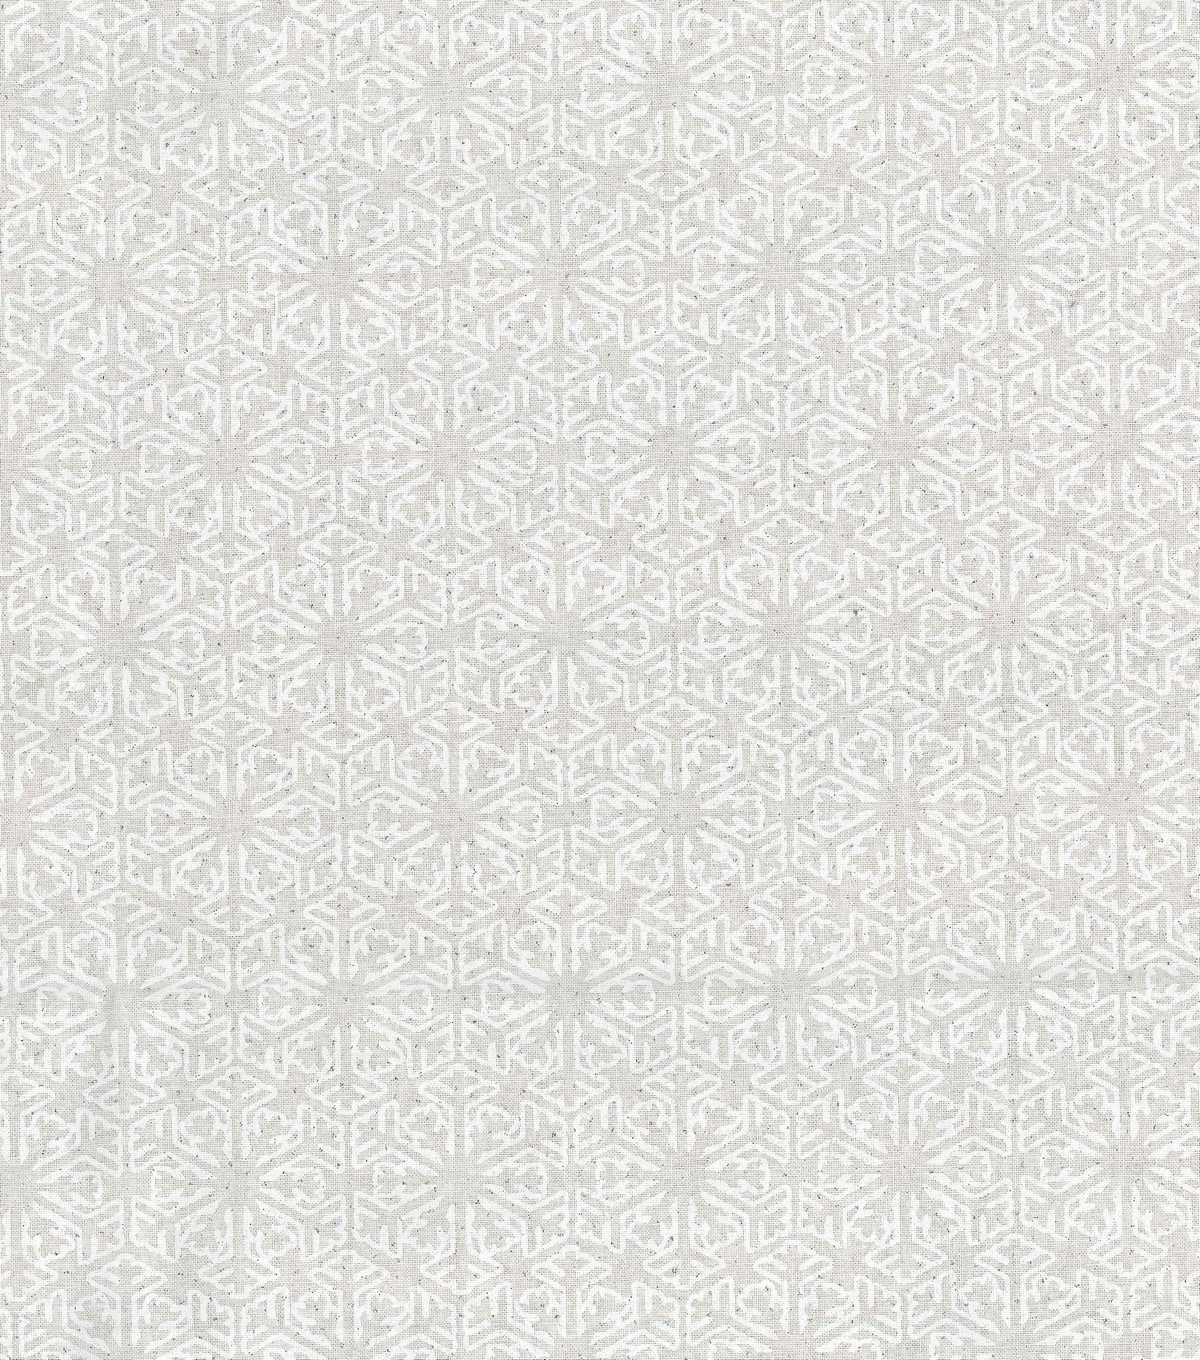 Keepsake Calico Holiday Cotton Fabric 43\u0022-Flakes with Glitter